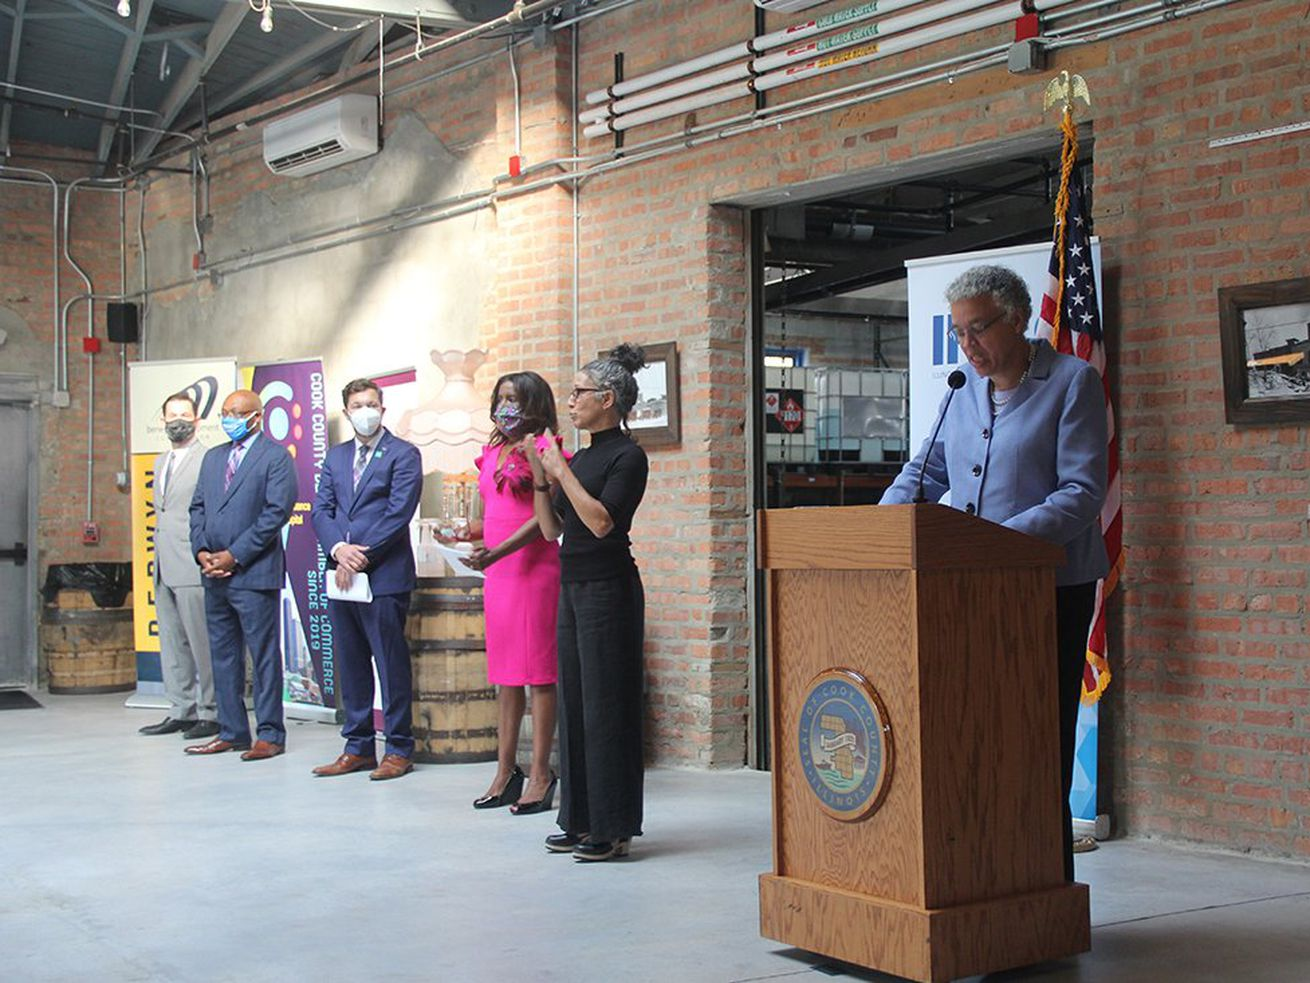 Cook County commissioner tests positive for COVID-19: 'Feeling well with very little symptoms'